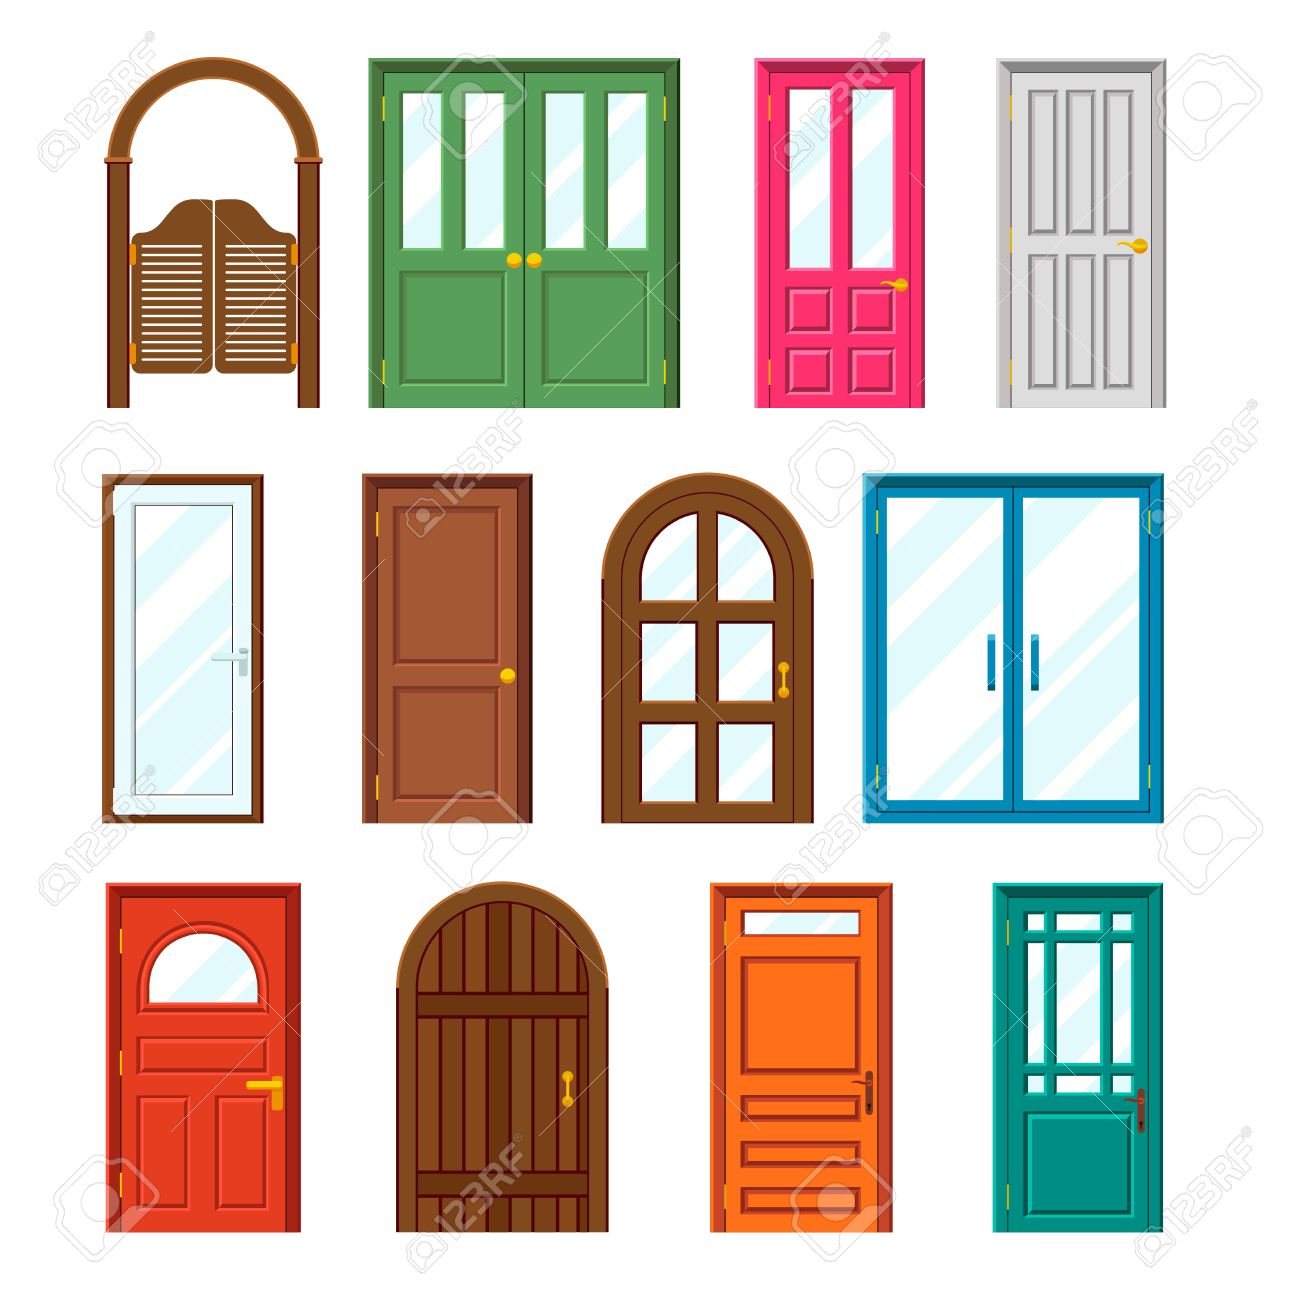 House window clipart free download best house window for Window design cartoon